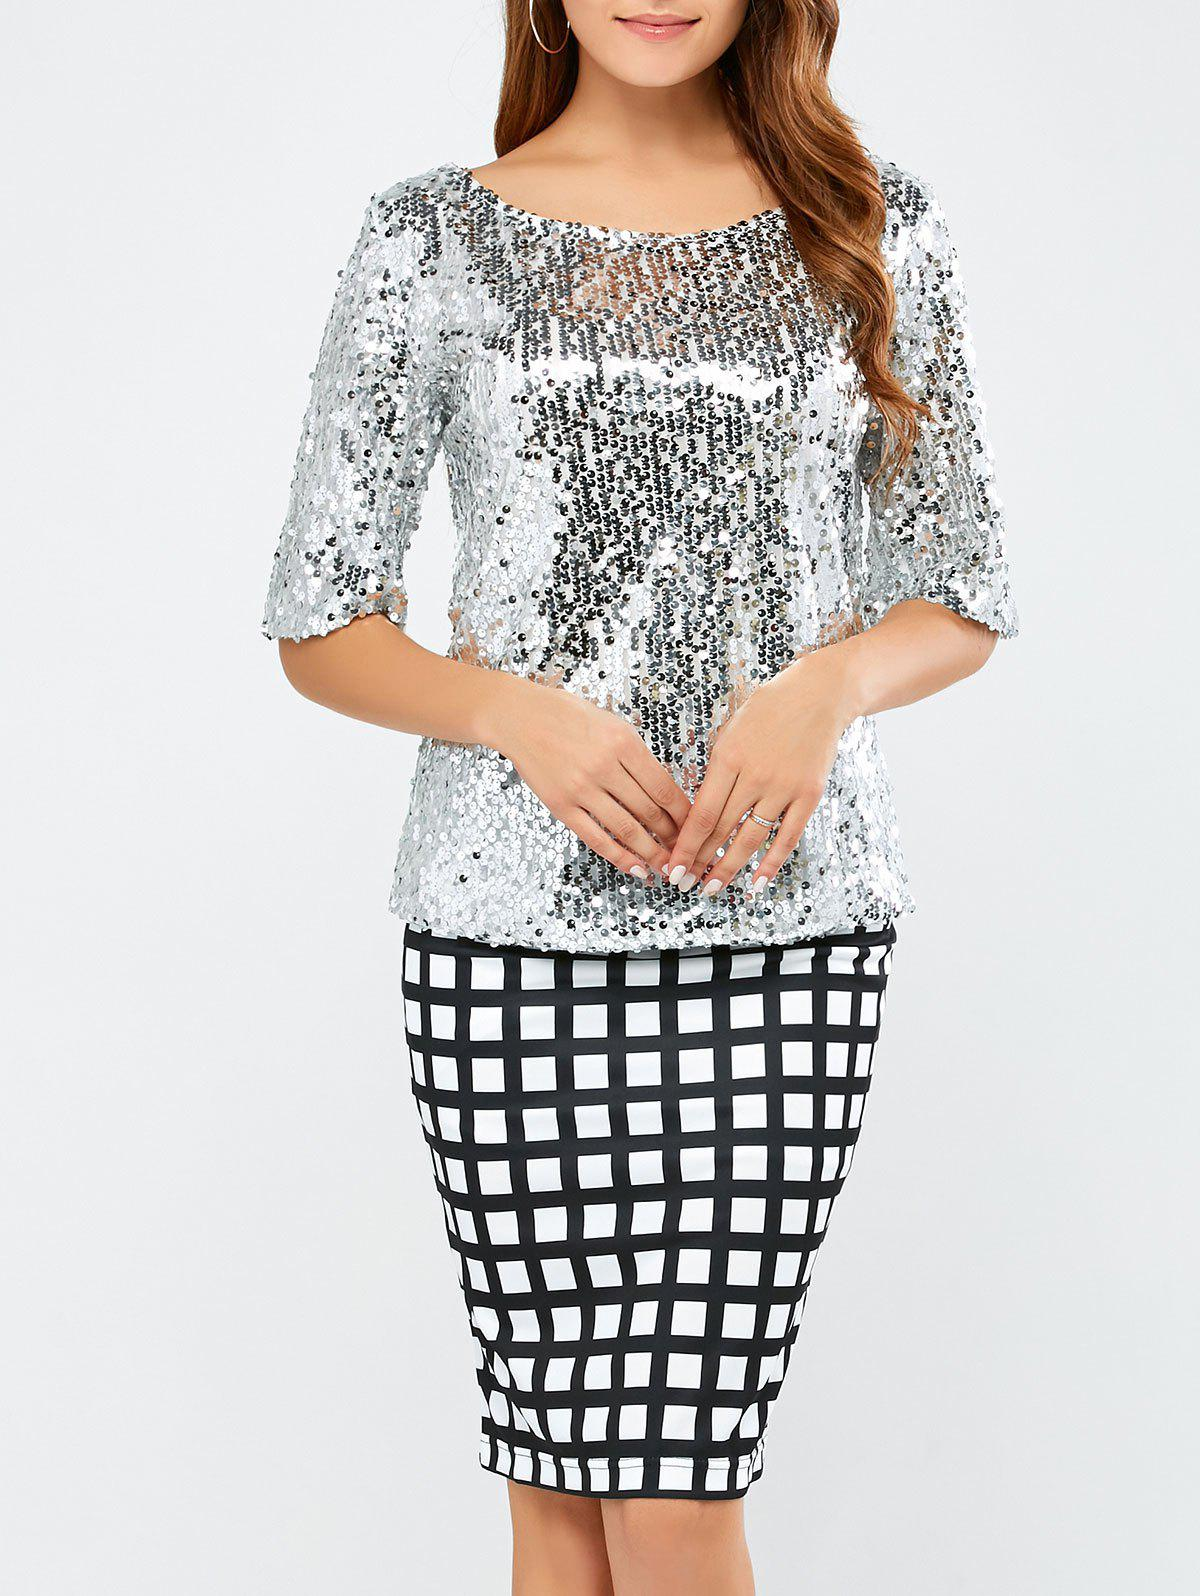 Sequined Short Sleeve Sparkly T-ShirtWOMEN<br><br>Size: L; Color: SILVER; Material: Polyester; Shirt Length: Regular; Sleeve Length: Short; Collar: Jewel Neck; Style: Streetwear; Season: Fall,Spring,Summer; Embellishment: Sequins; Pattern Type: Patchwork; Weight: 0.370kg; Package Contents: 1 x T-Shirt;